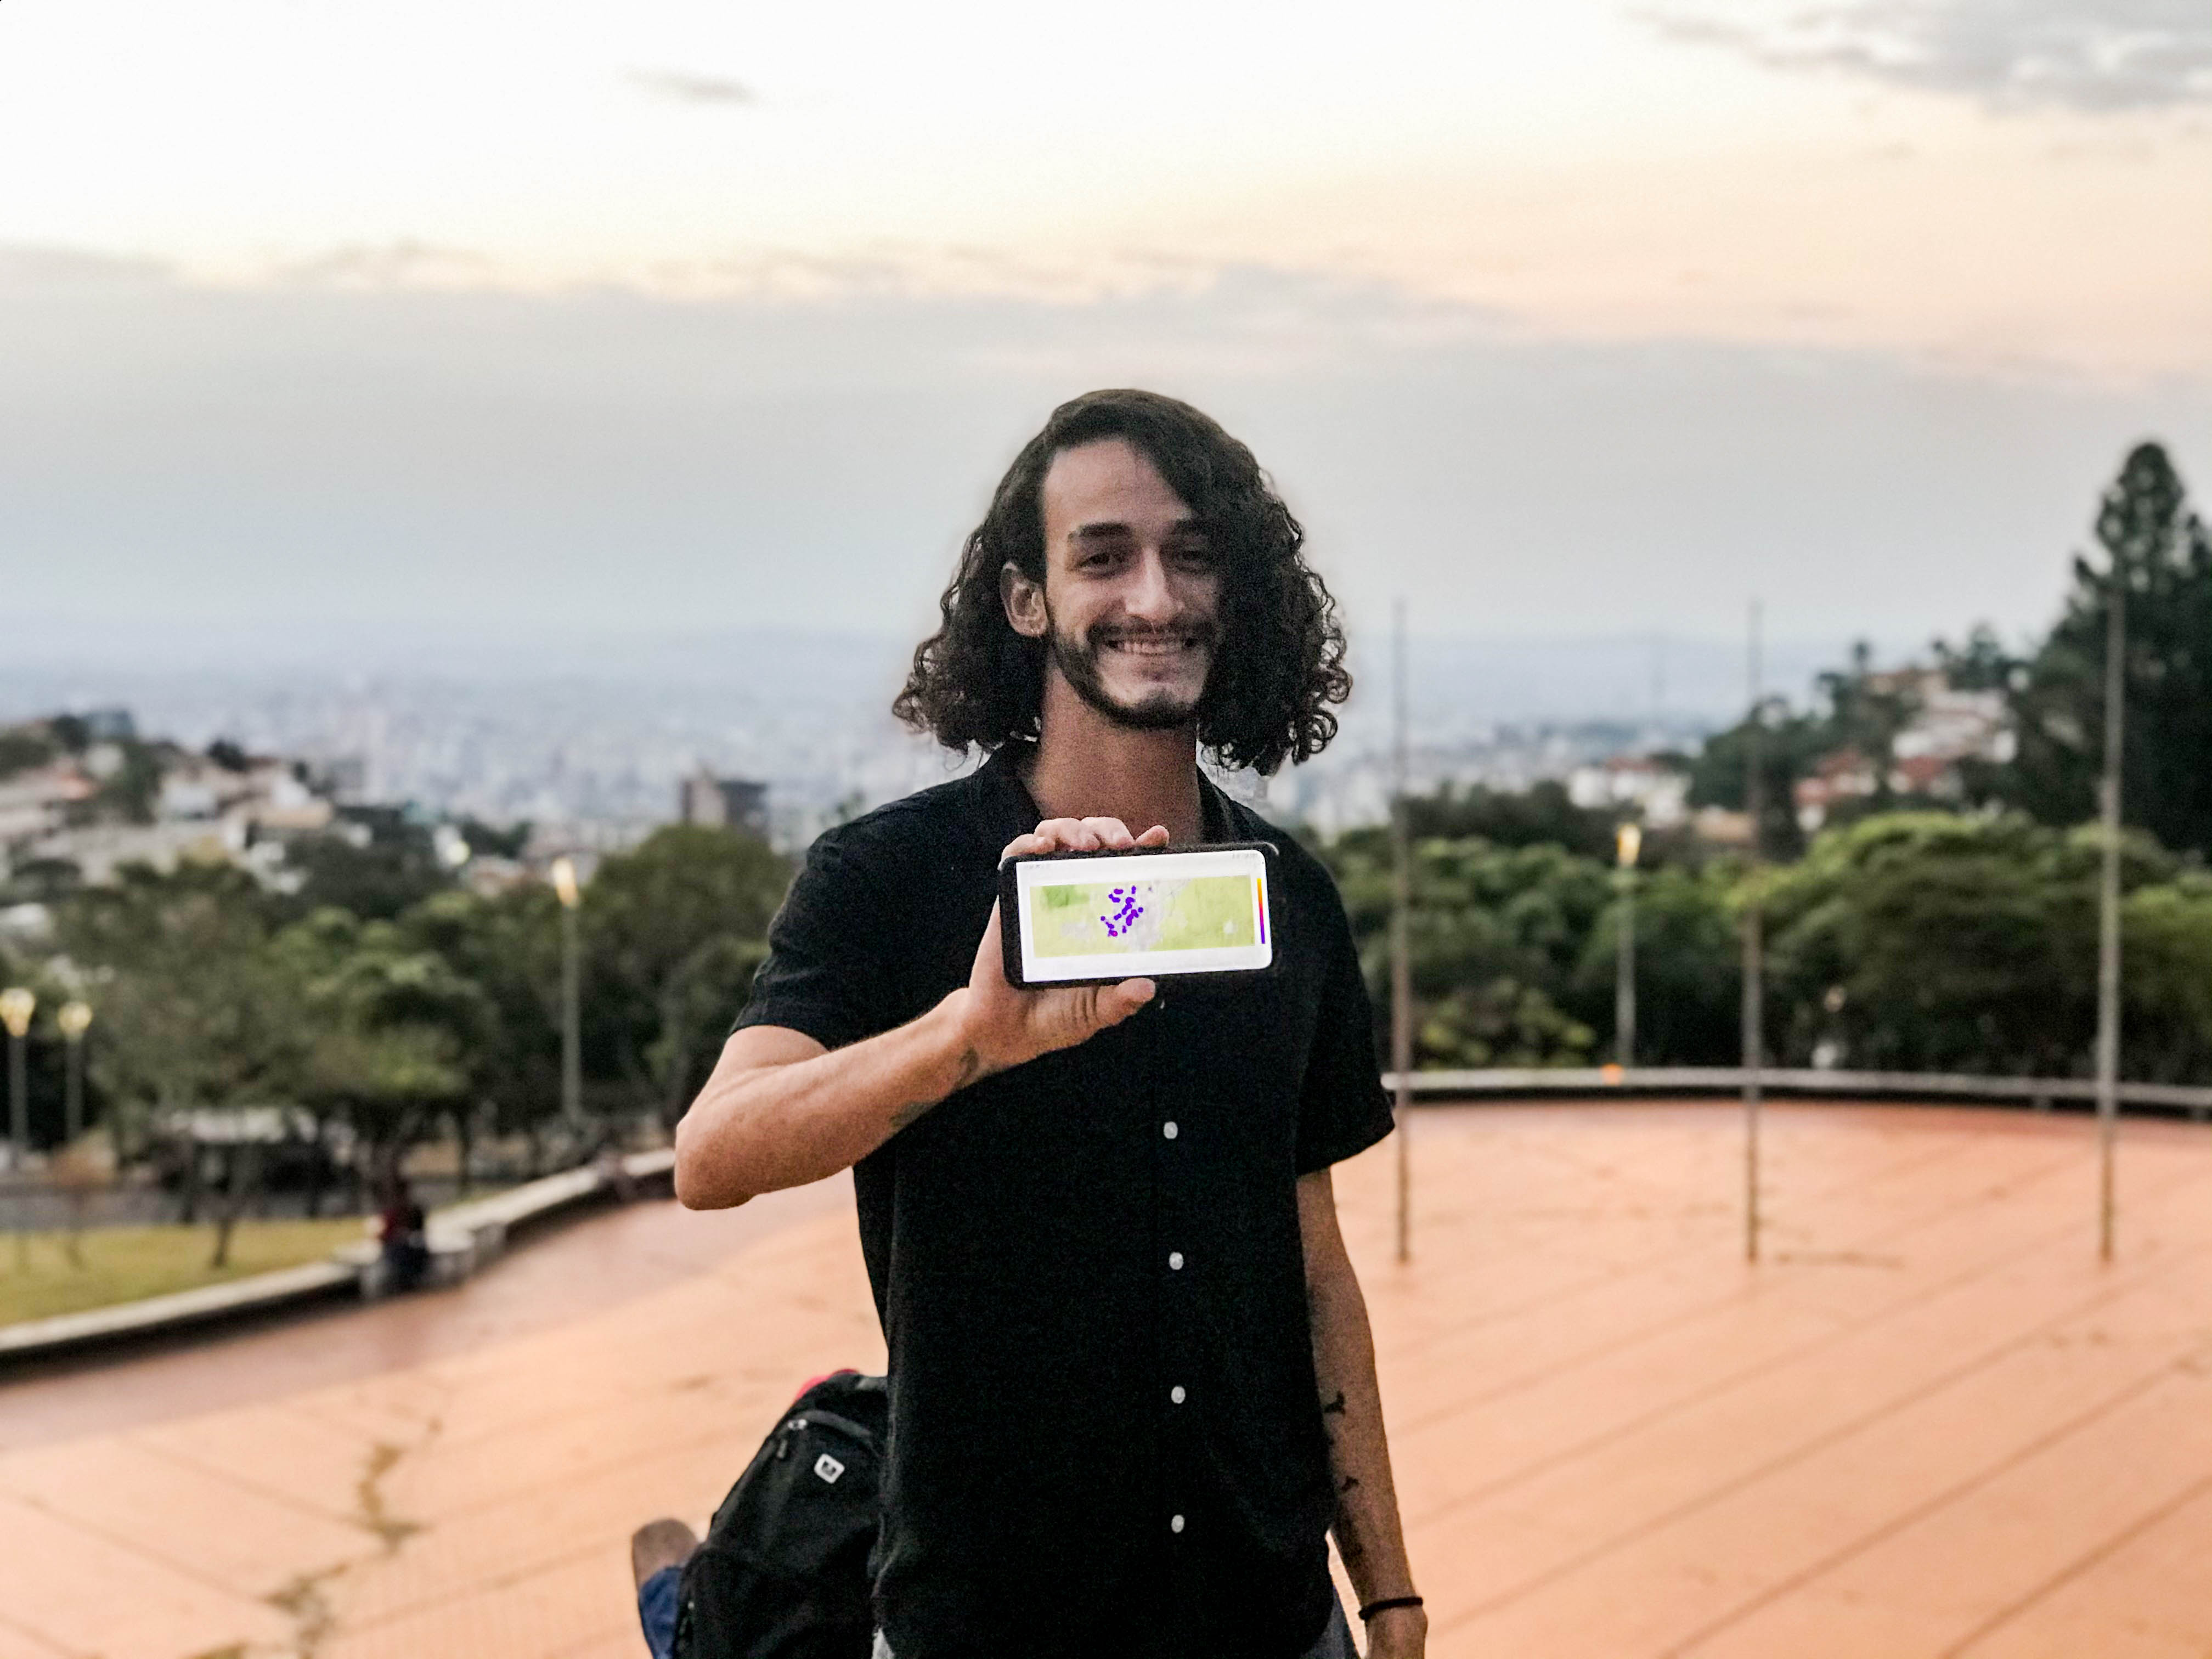 Florida Poly graduate project aims to transform traffic in Brazilian city